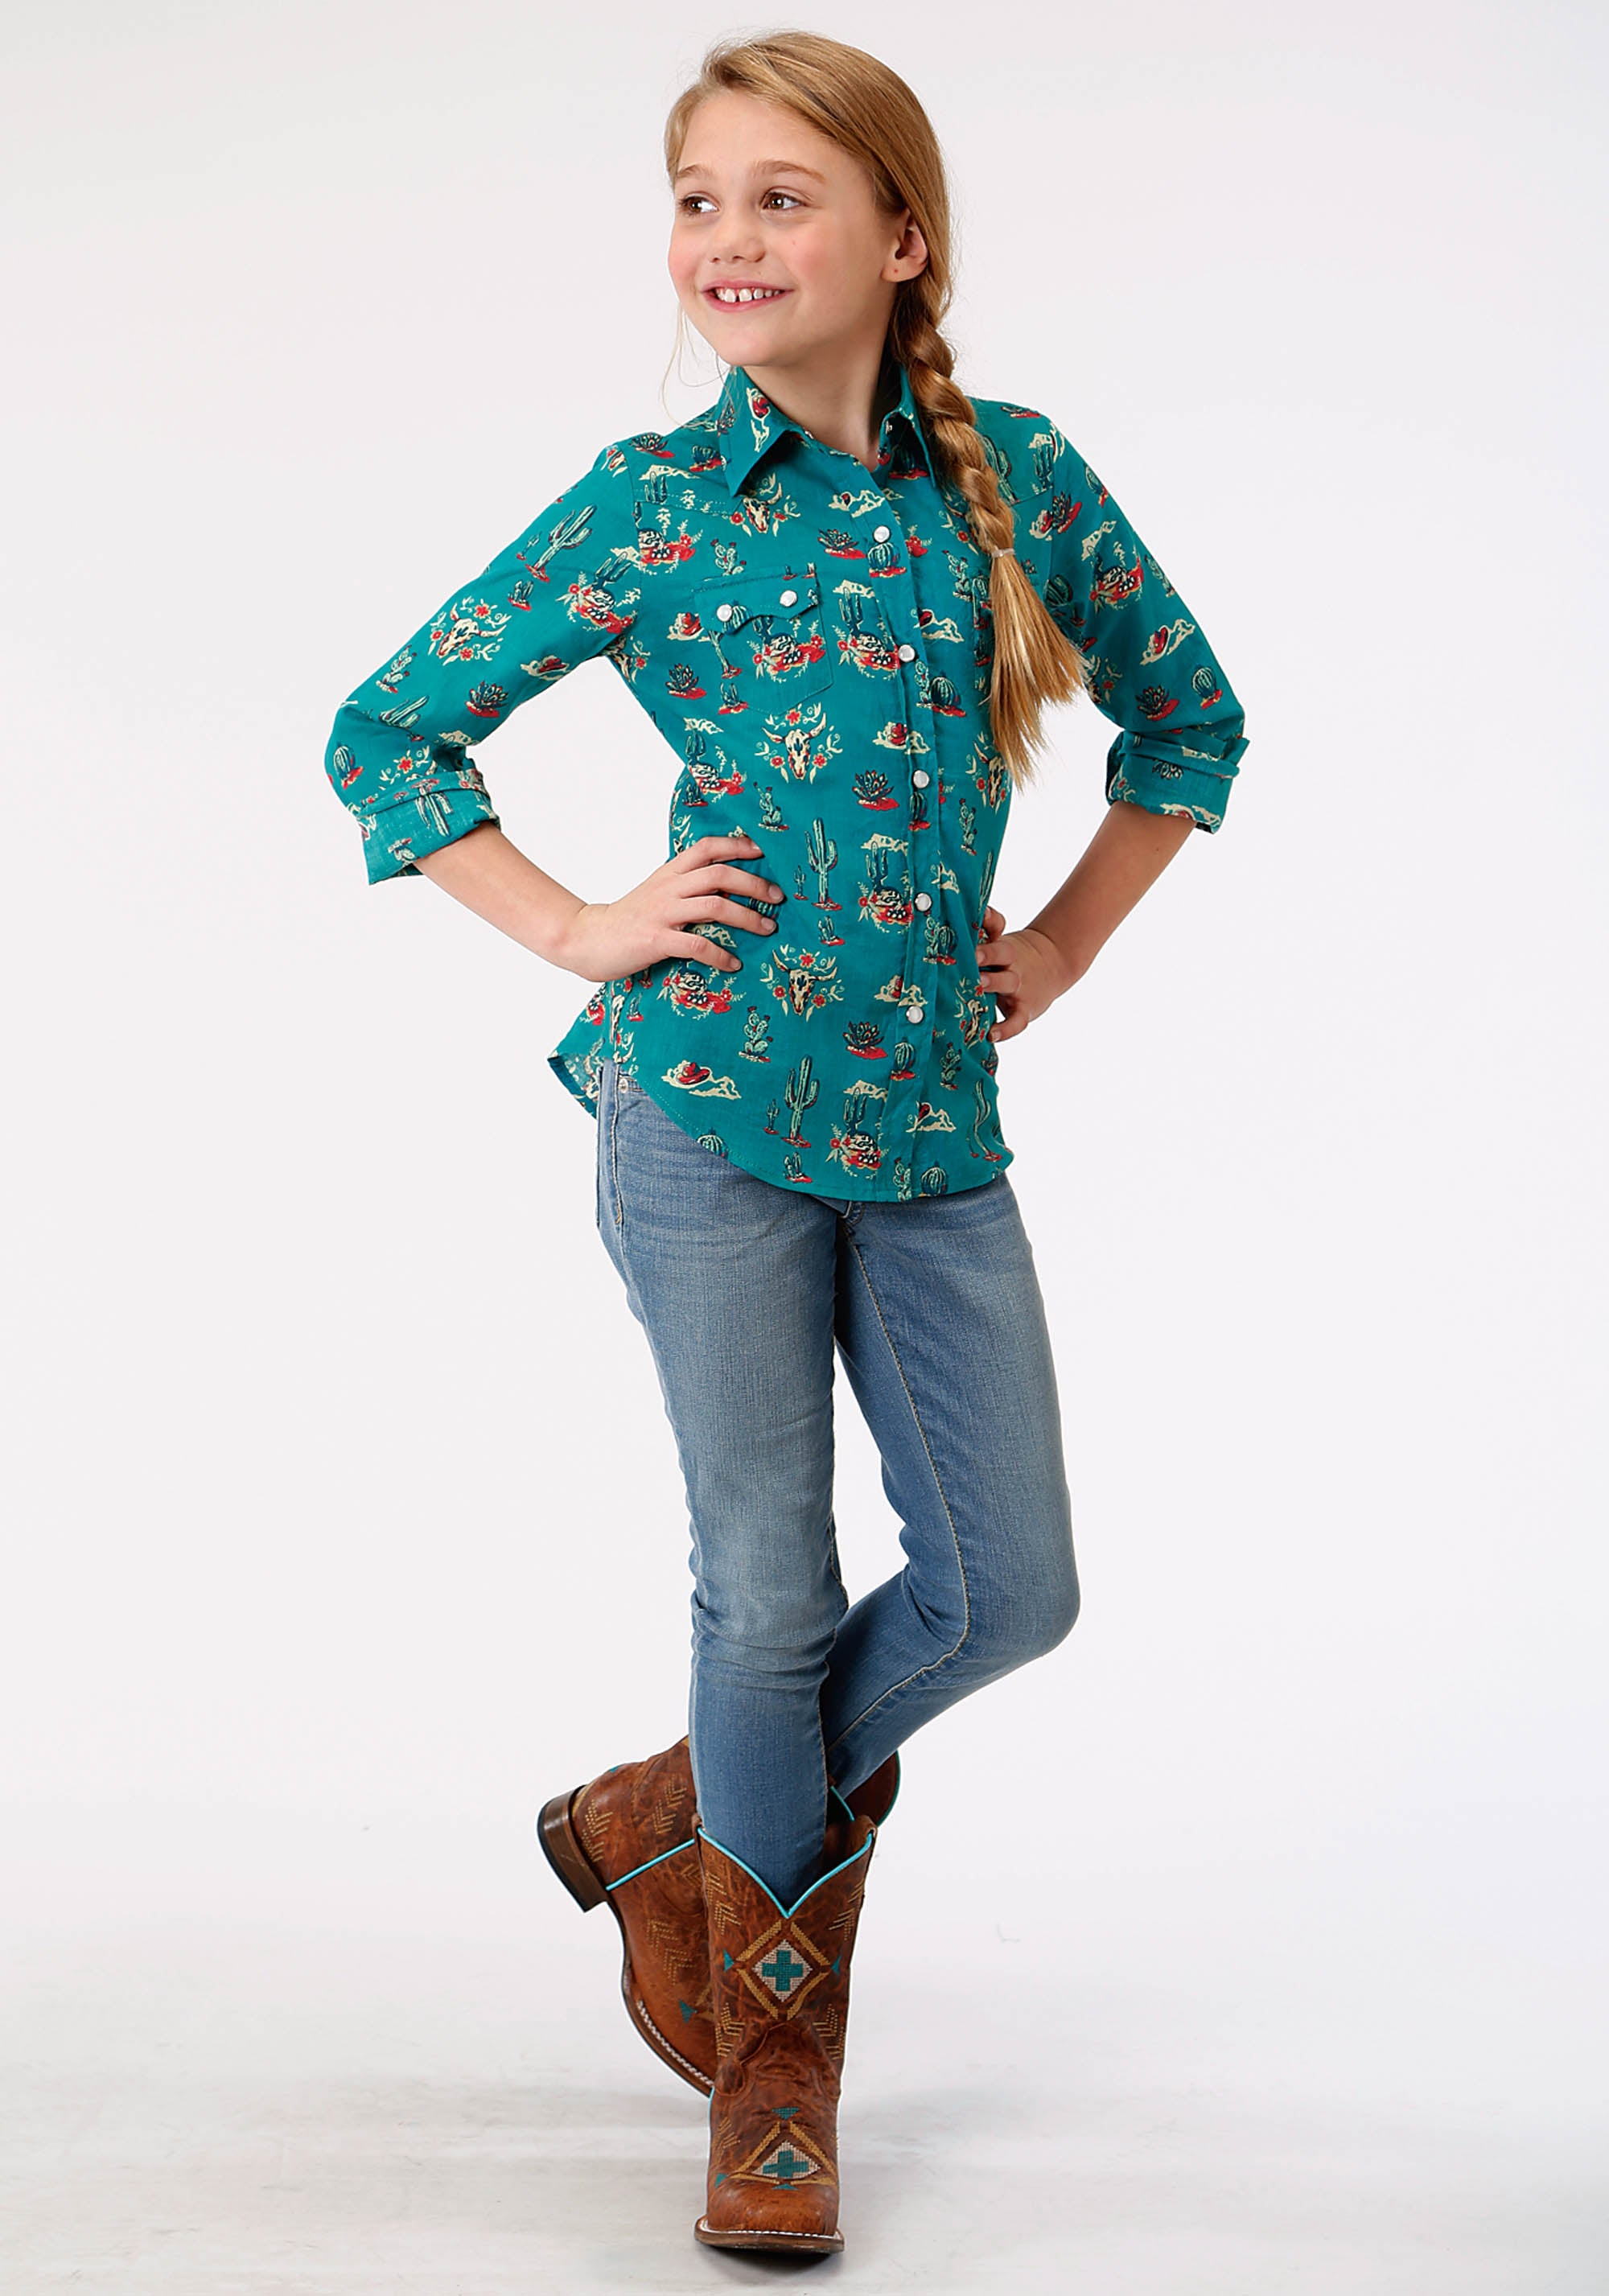 ROPER GIRLS BLUE 9870 CACTUS SCENE LS WESTERN BLOUSE FIVE STAR GIRLS LONG SLEEVE